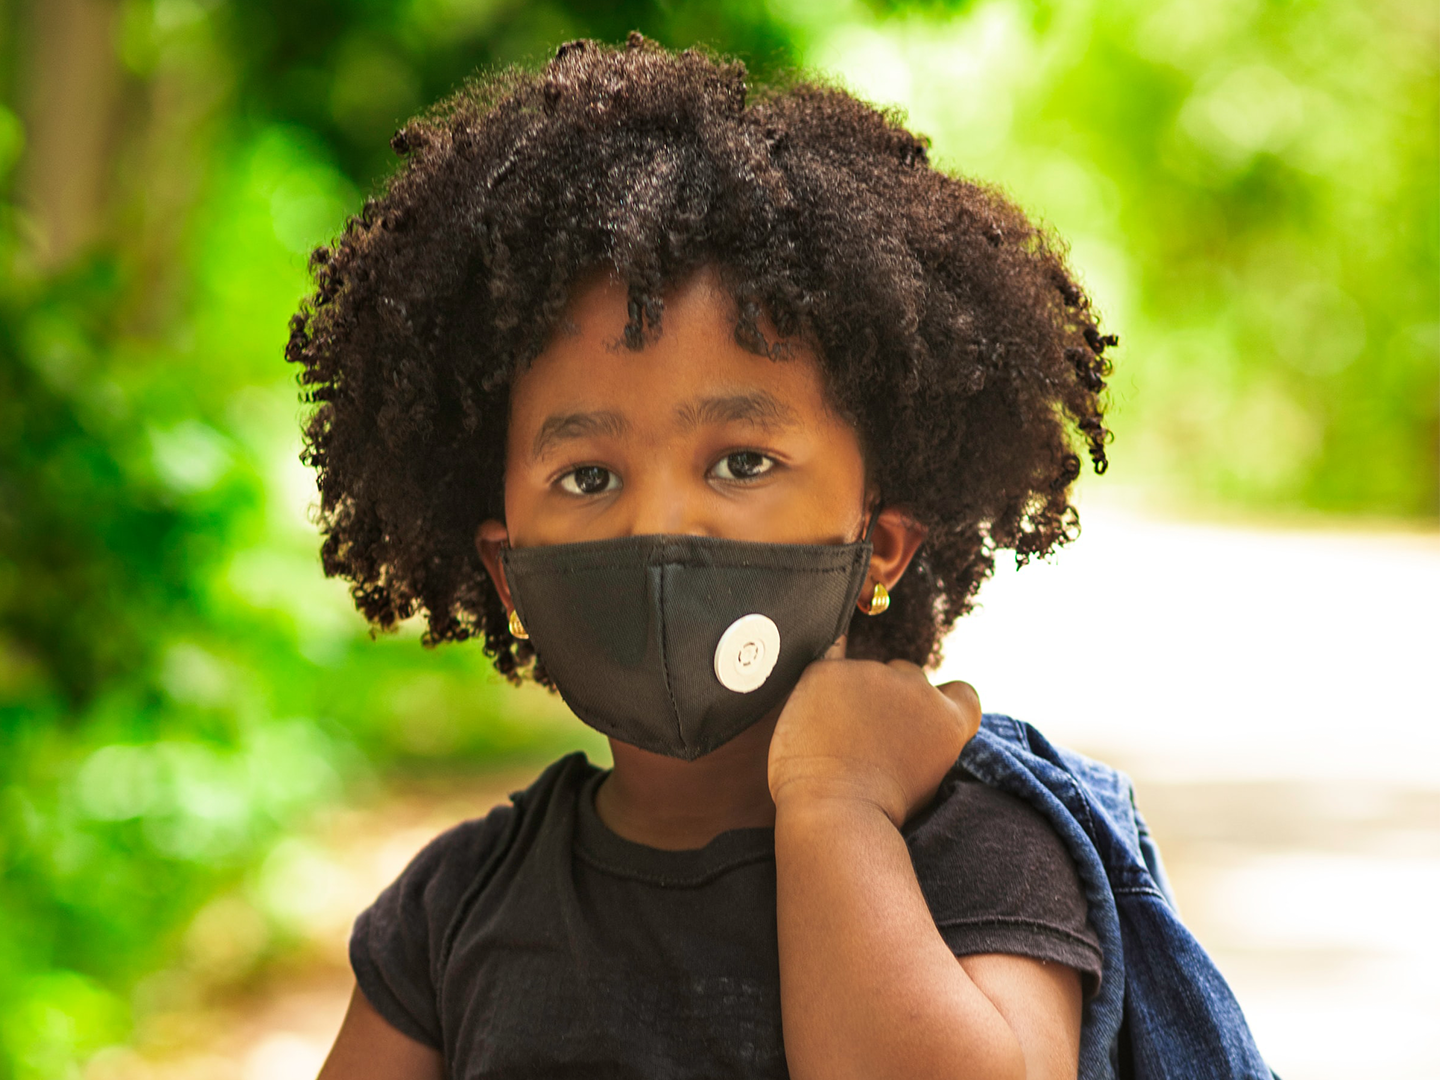 A child in the Dominican Republic wears a mask to protect against COVID-19